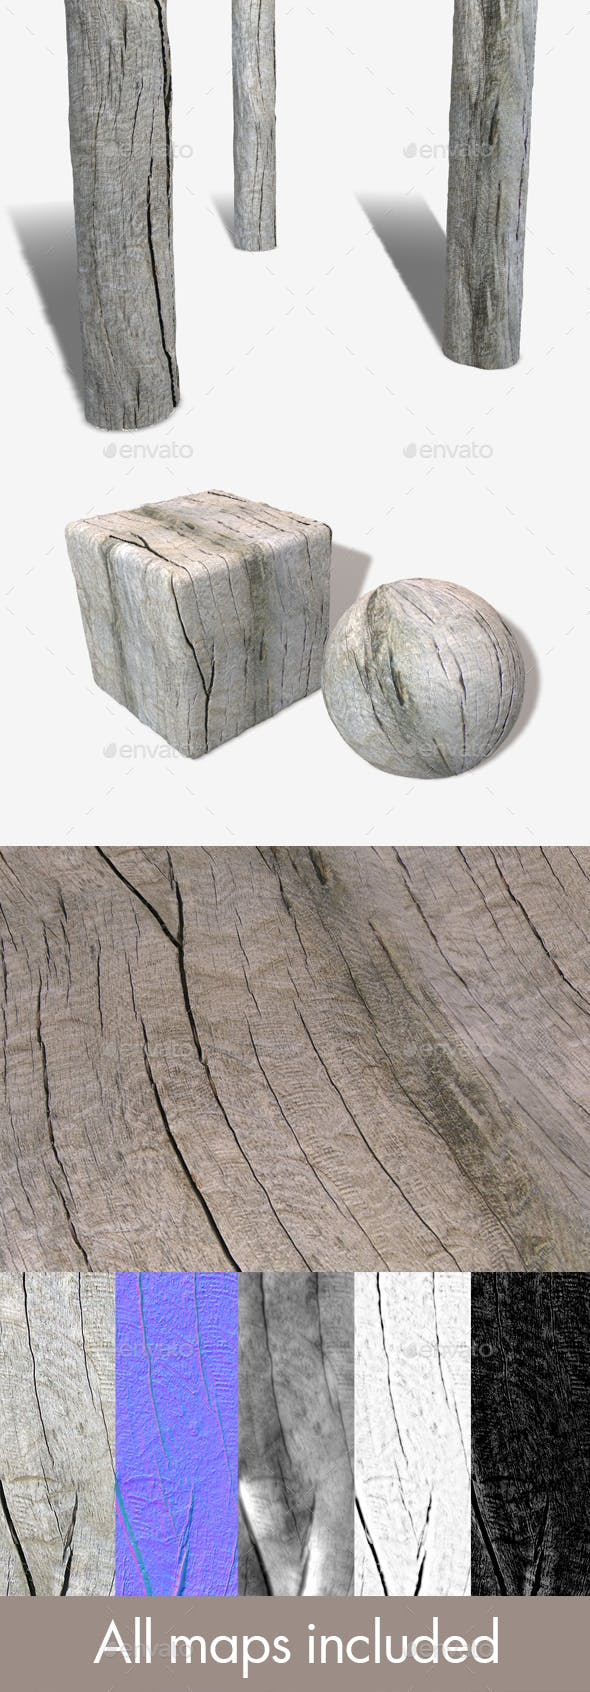 Driftwood Seamless Texture - 3DOcean Item for Sale